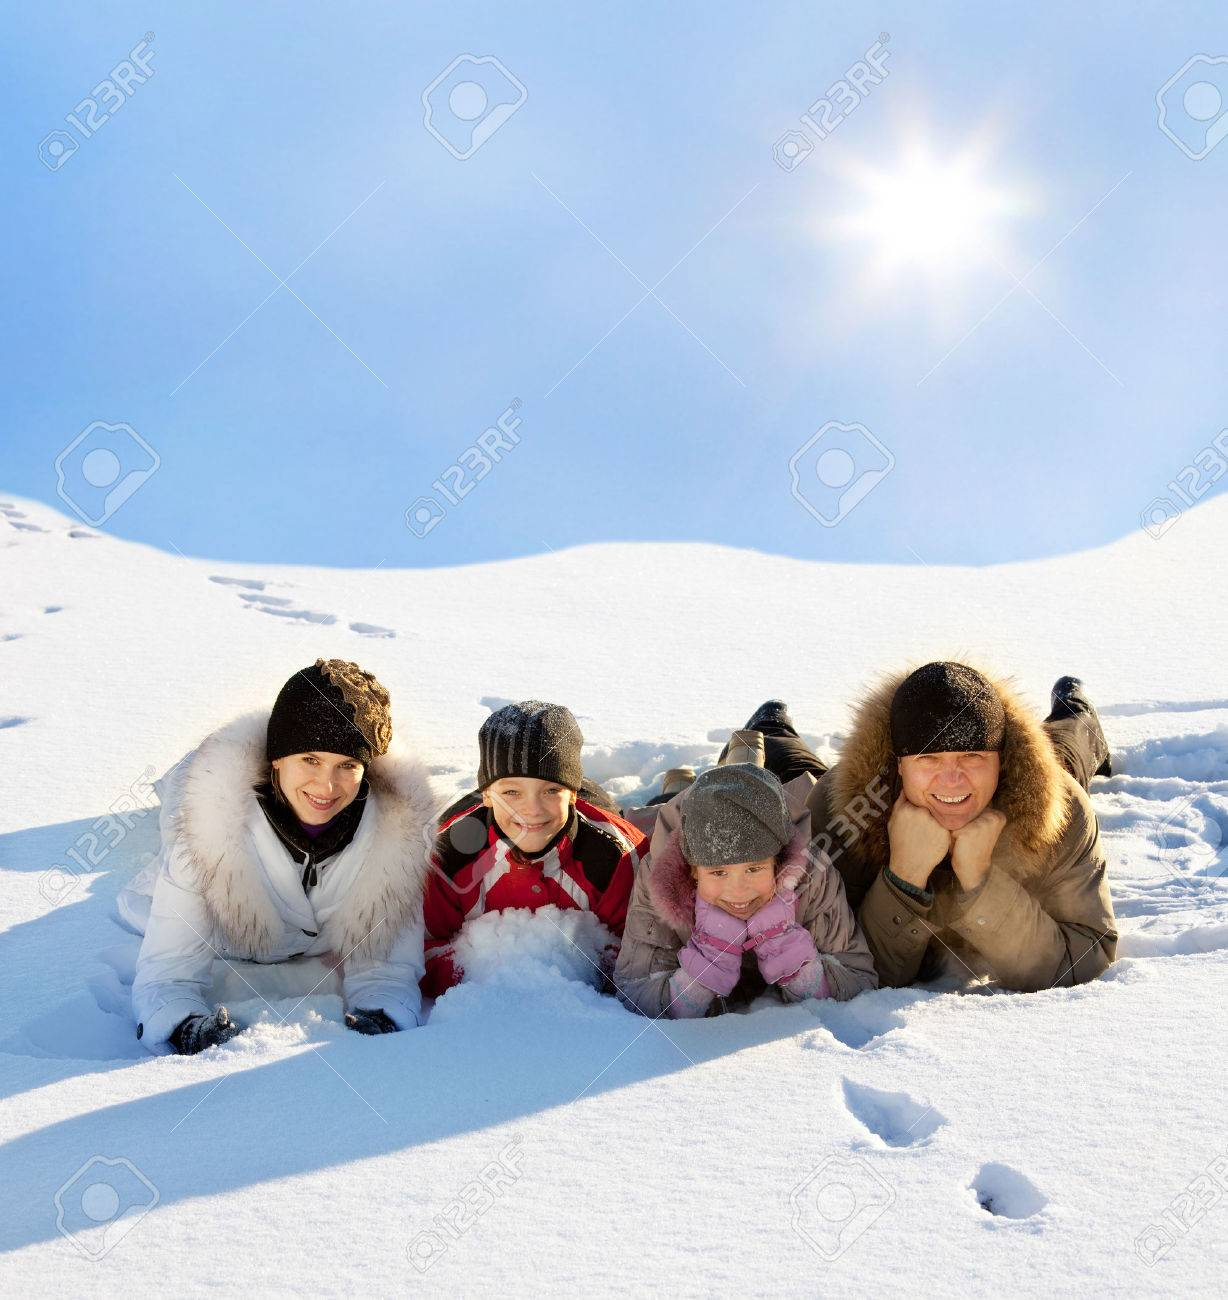 Family with children in the snow in winter. Stock Photo - 23559598